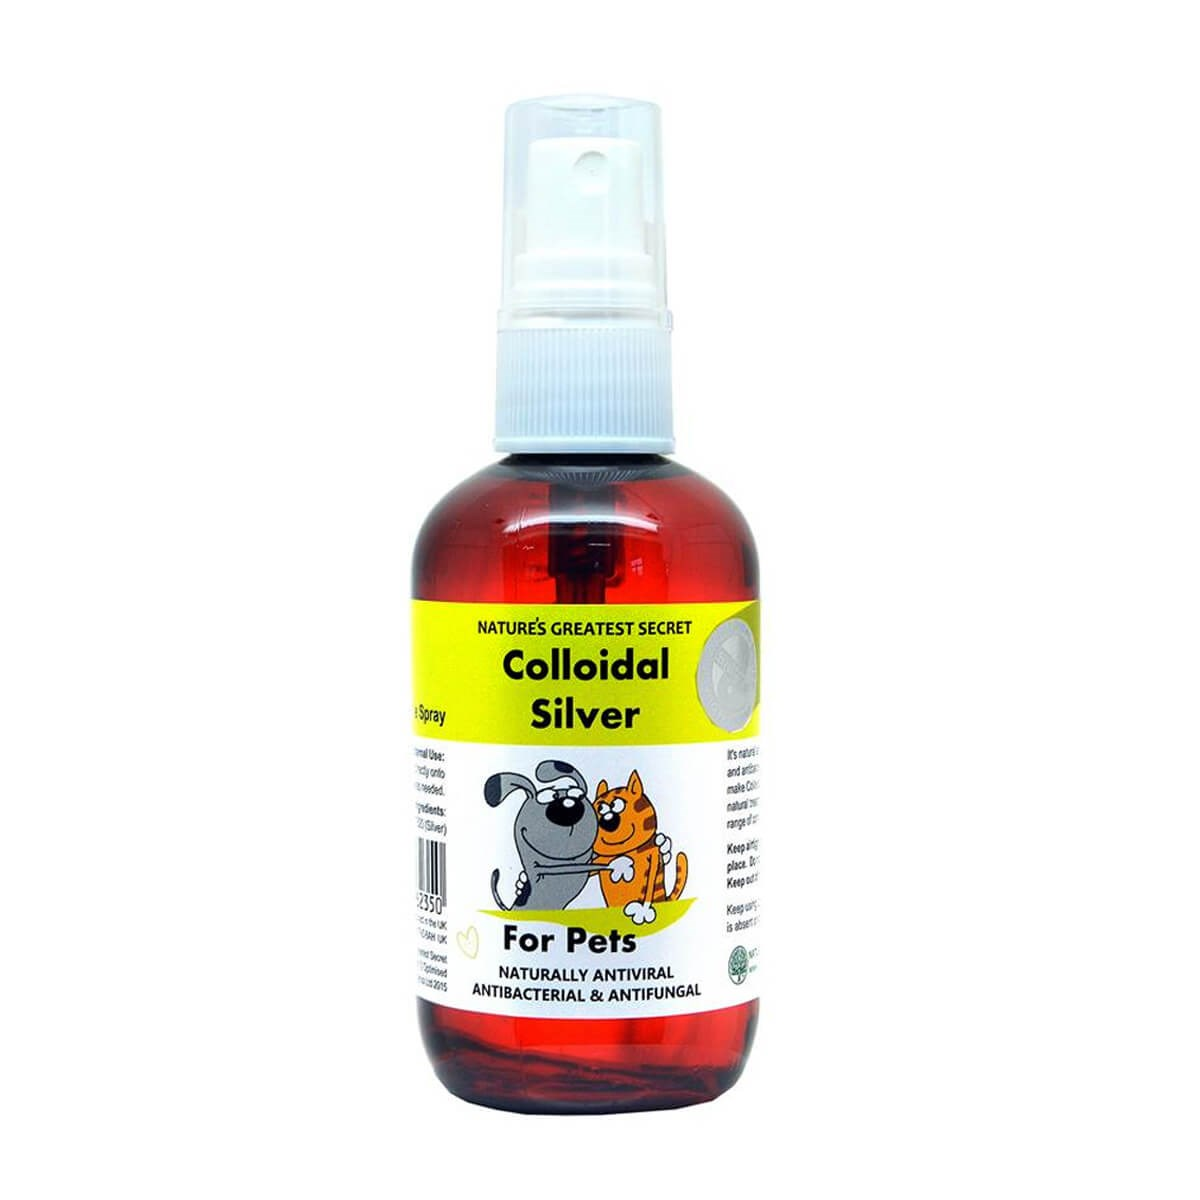 Nature's Greatest Secret Pets Colloidal Silver Spray